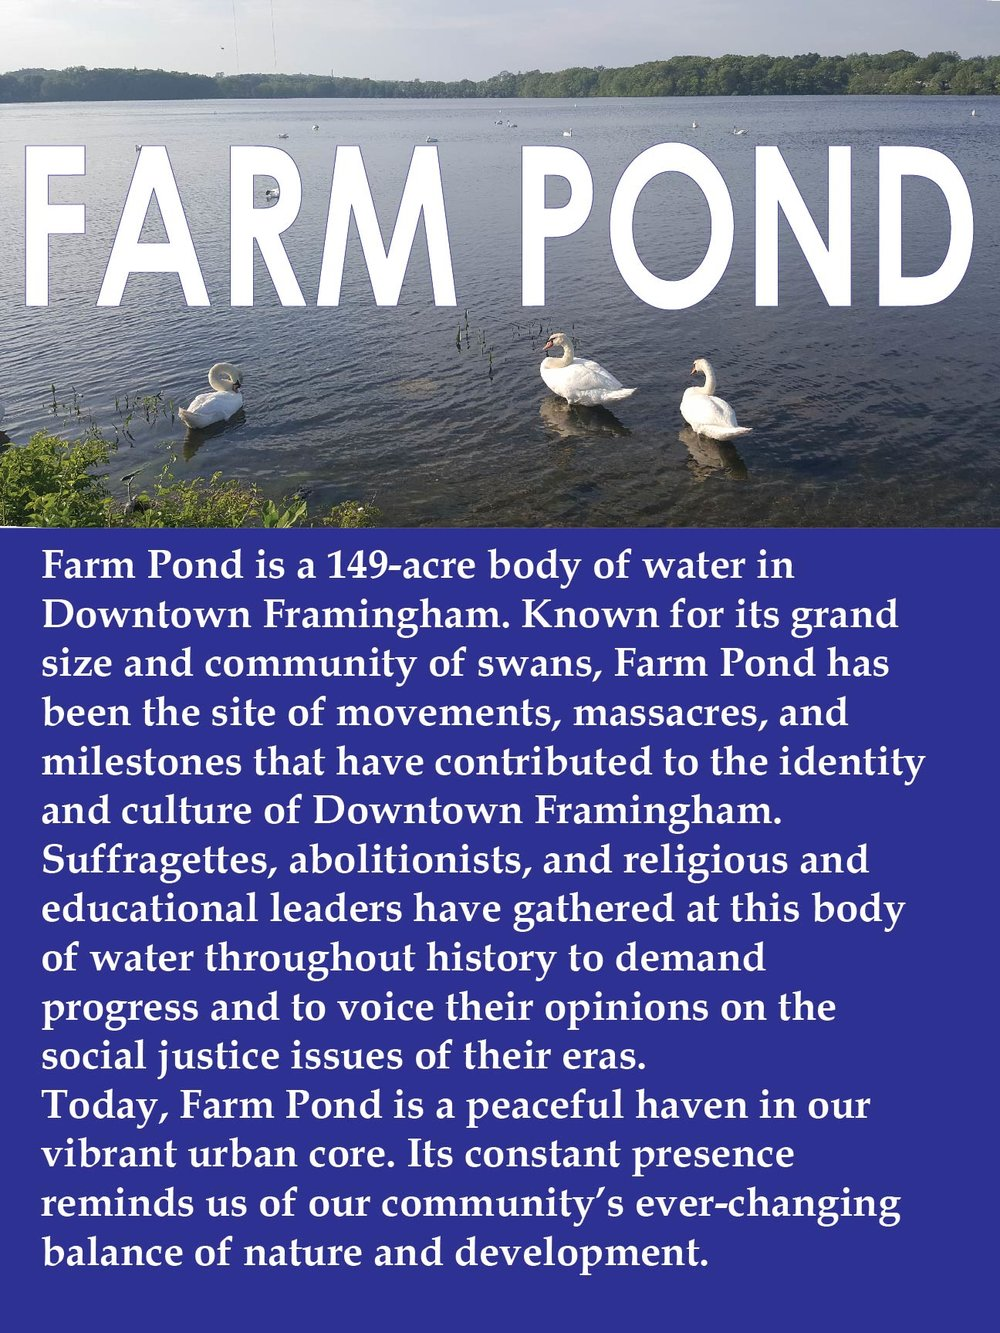 farm pond tour board-01.jpg